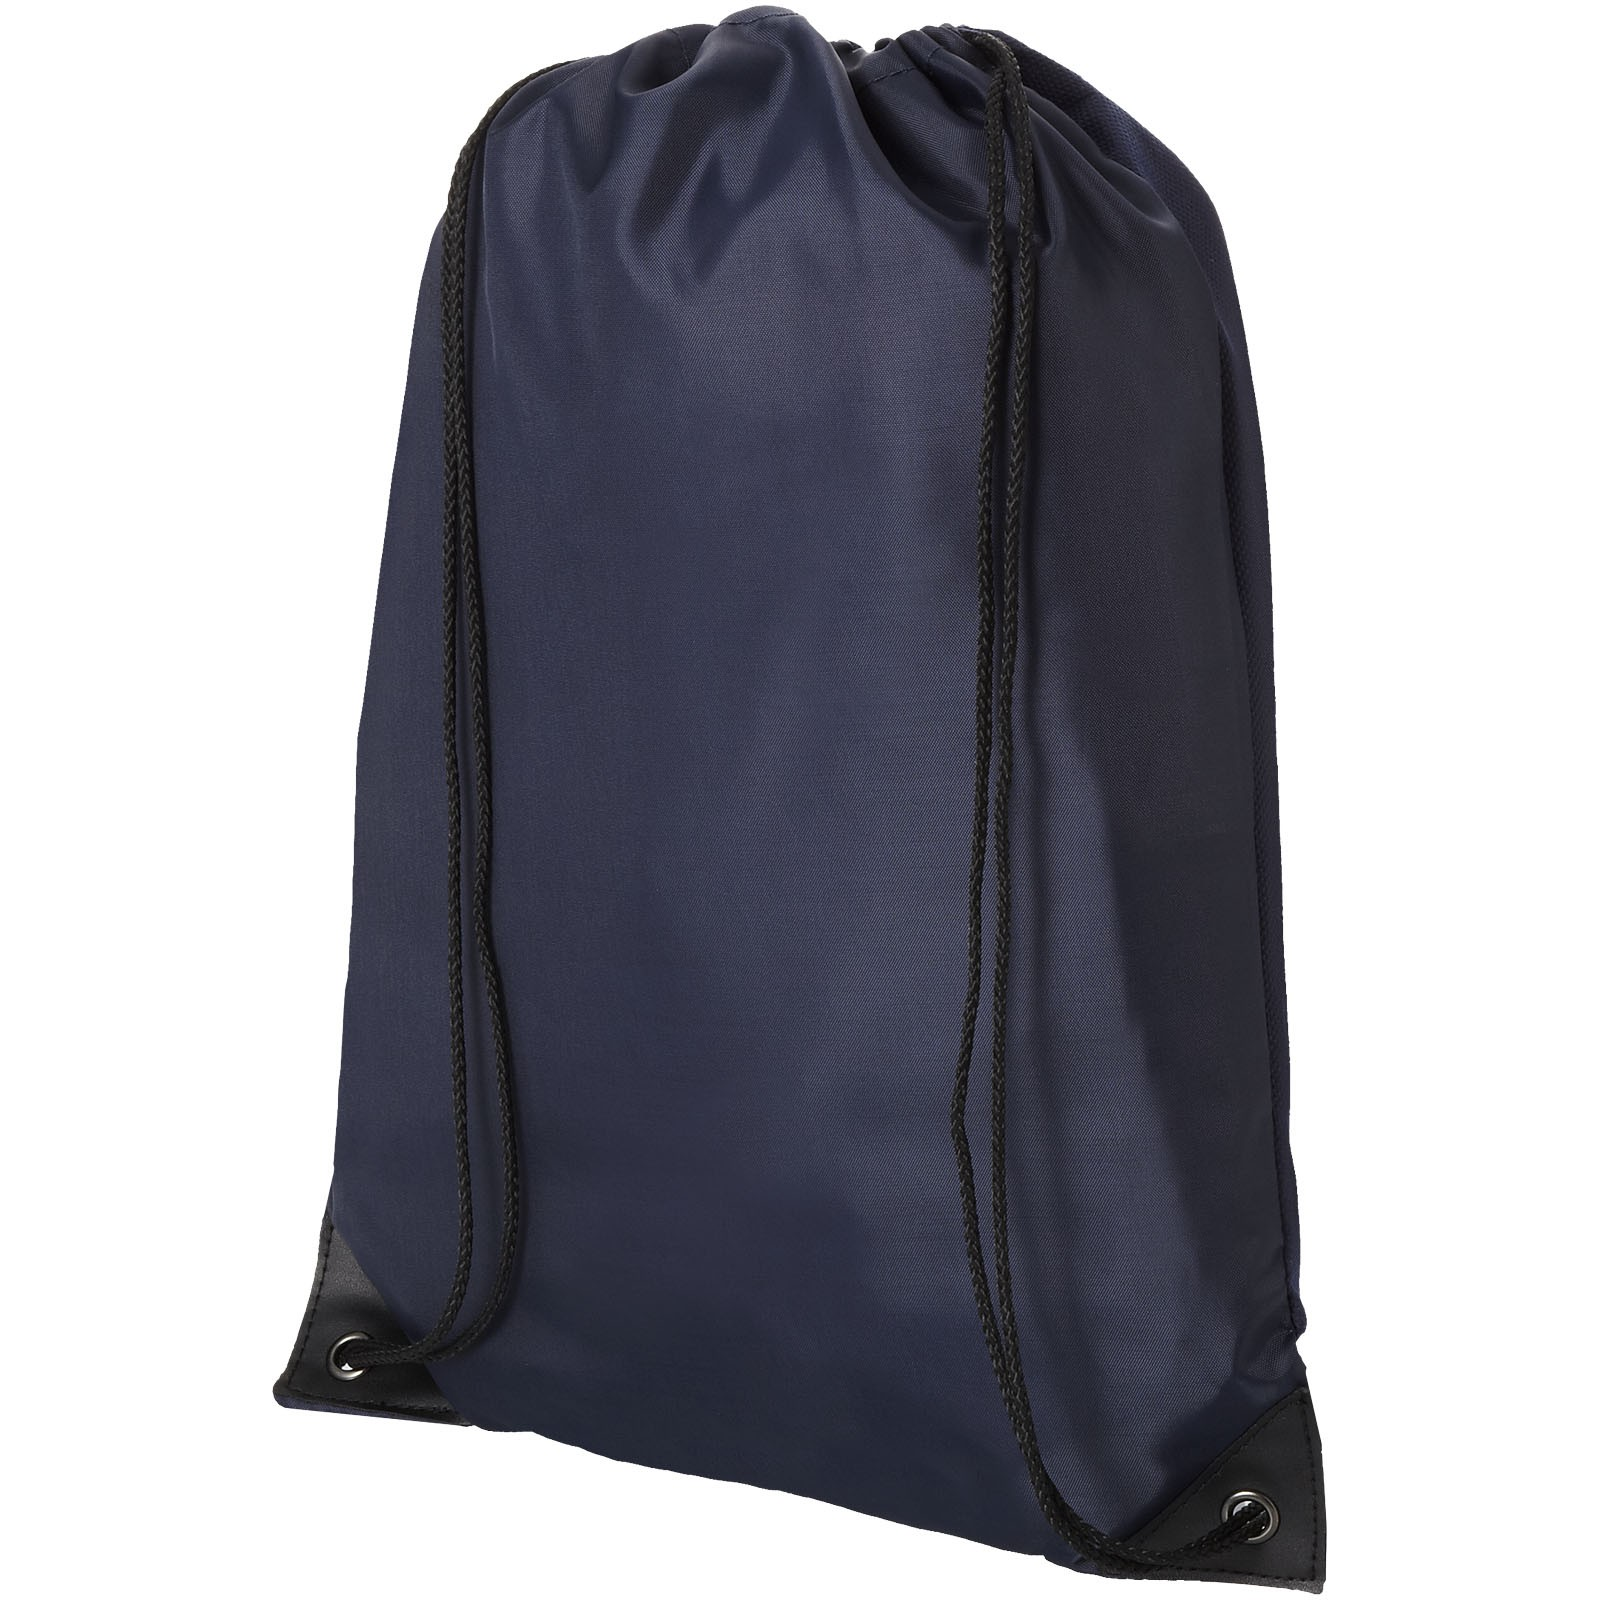 Condor polyester and non-woven drawstring backpack - Navy